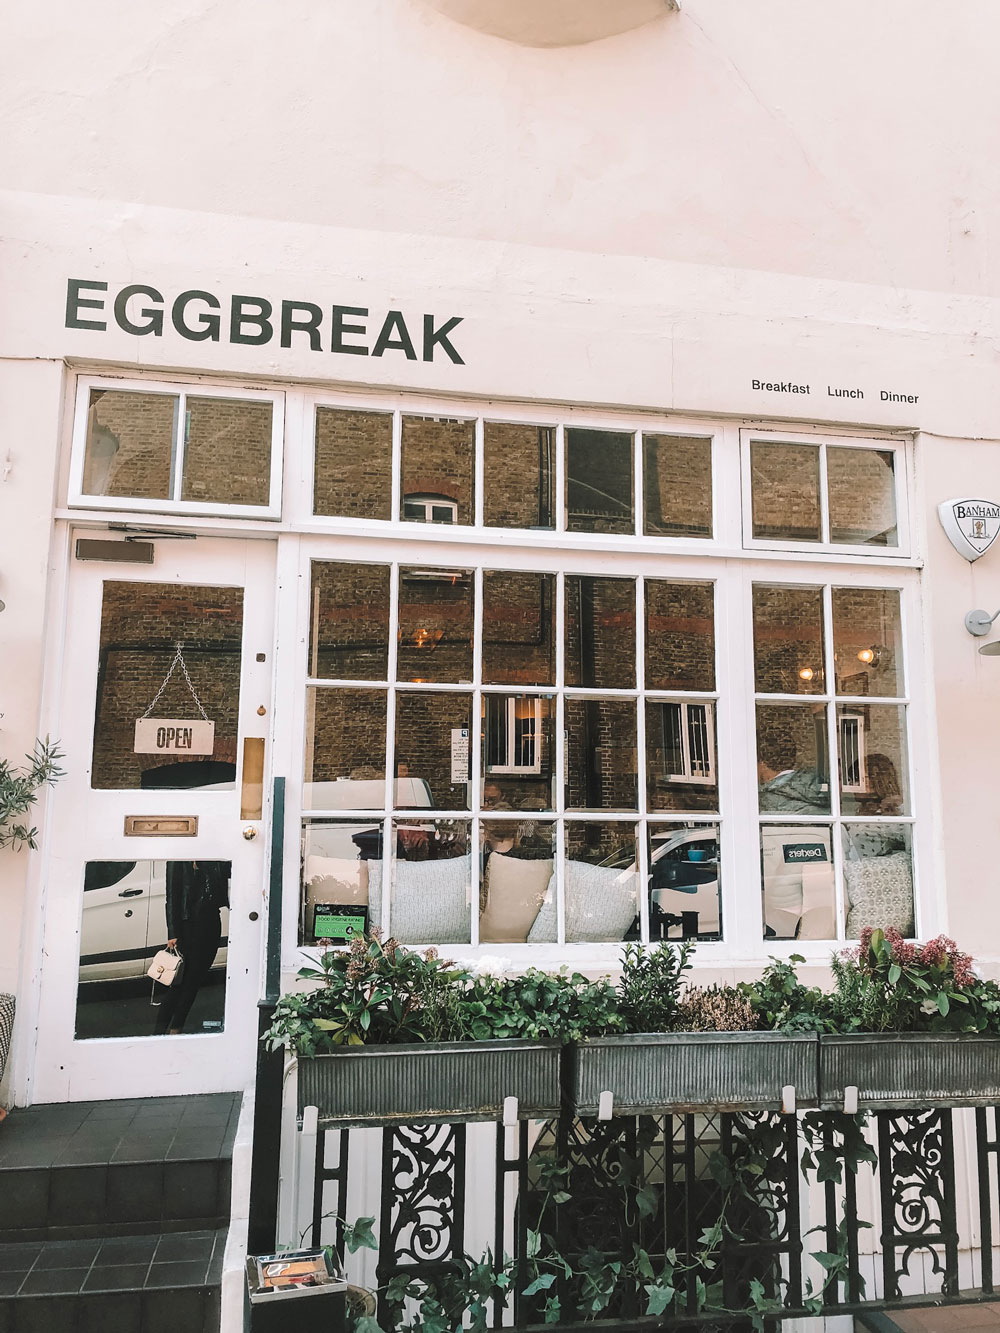 Eggbreak breakfast in Notting Hill